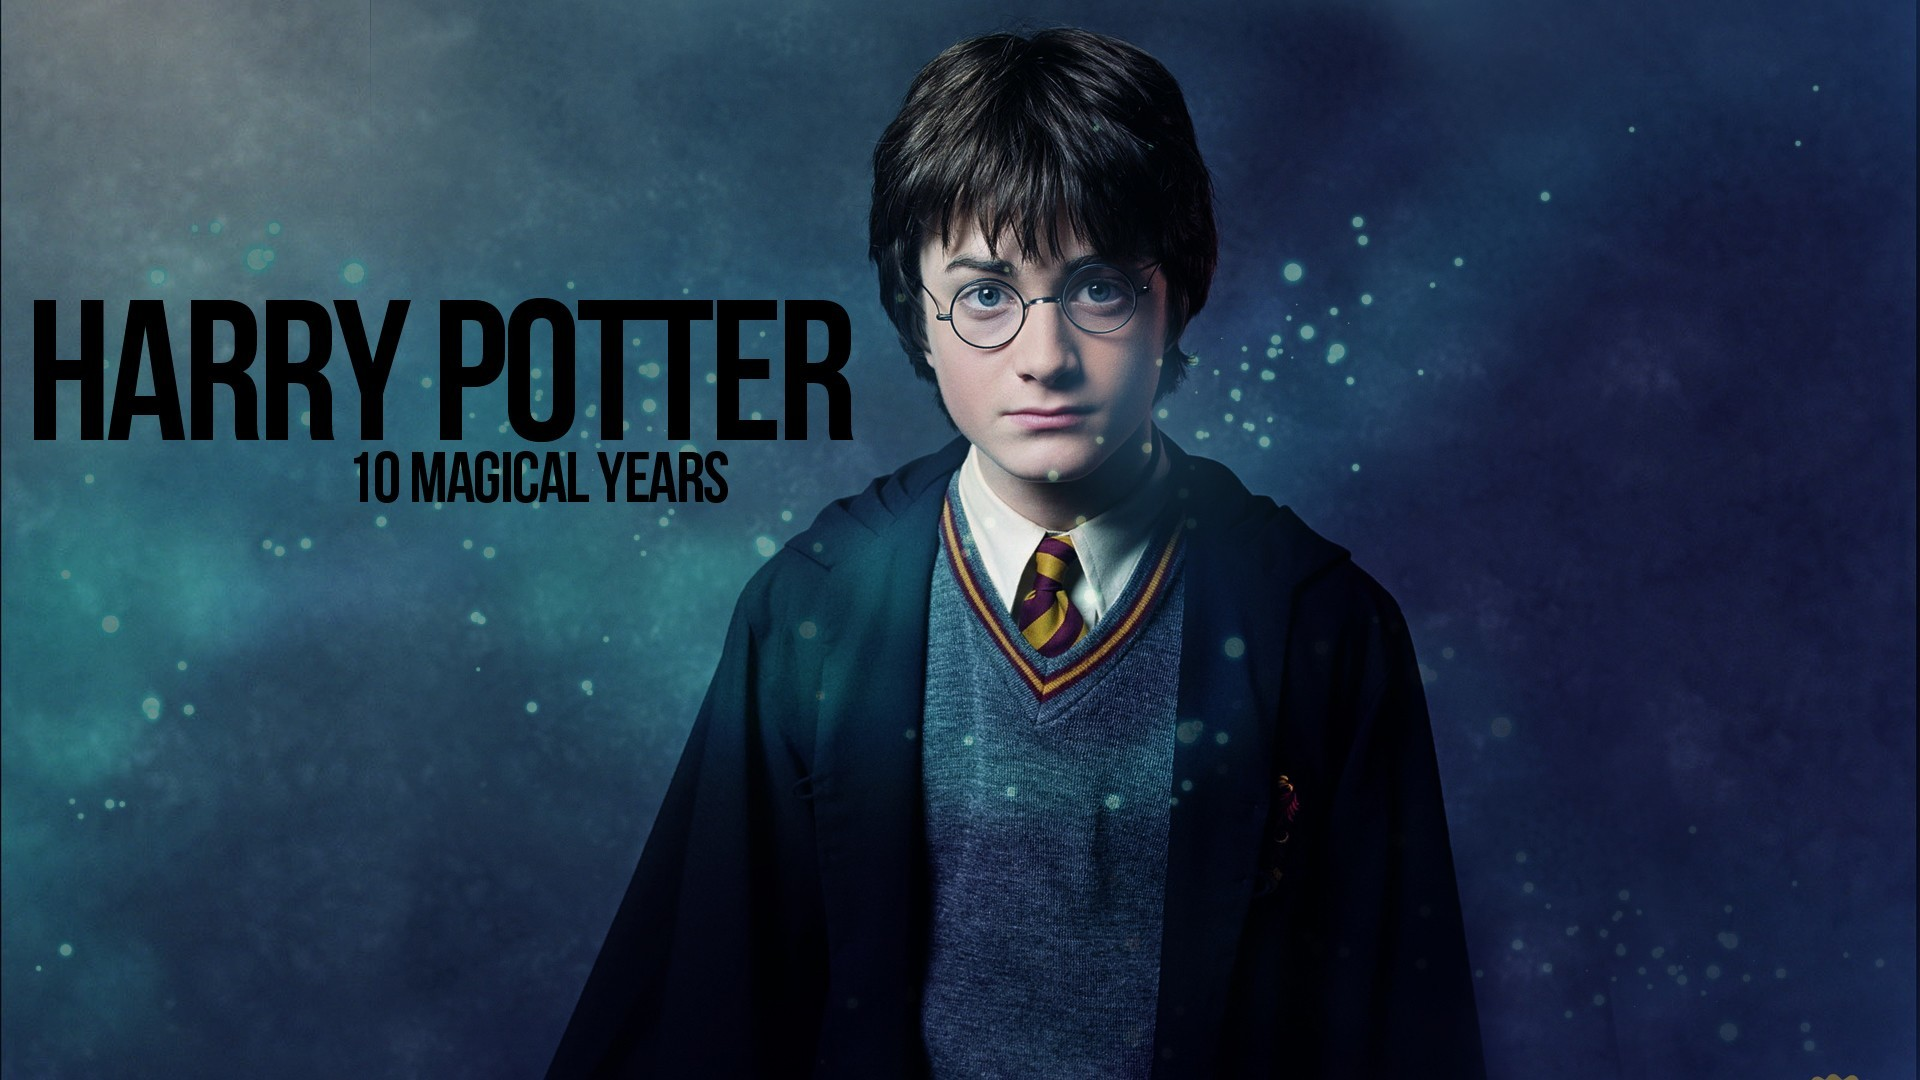 where can i download free harry potter audio books